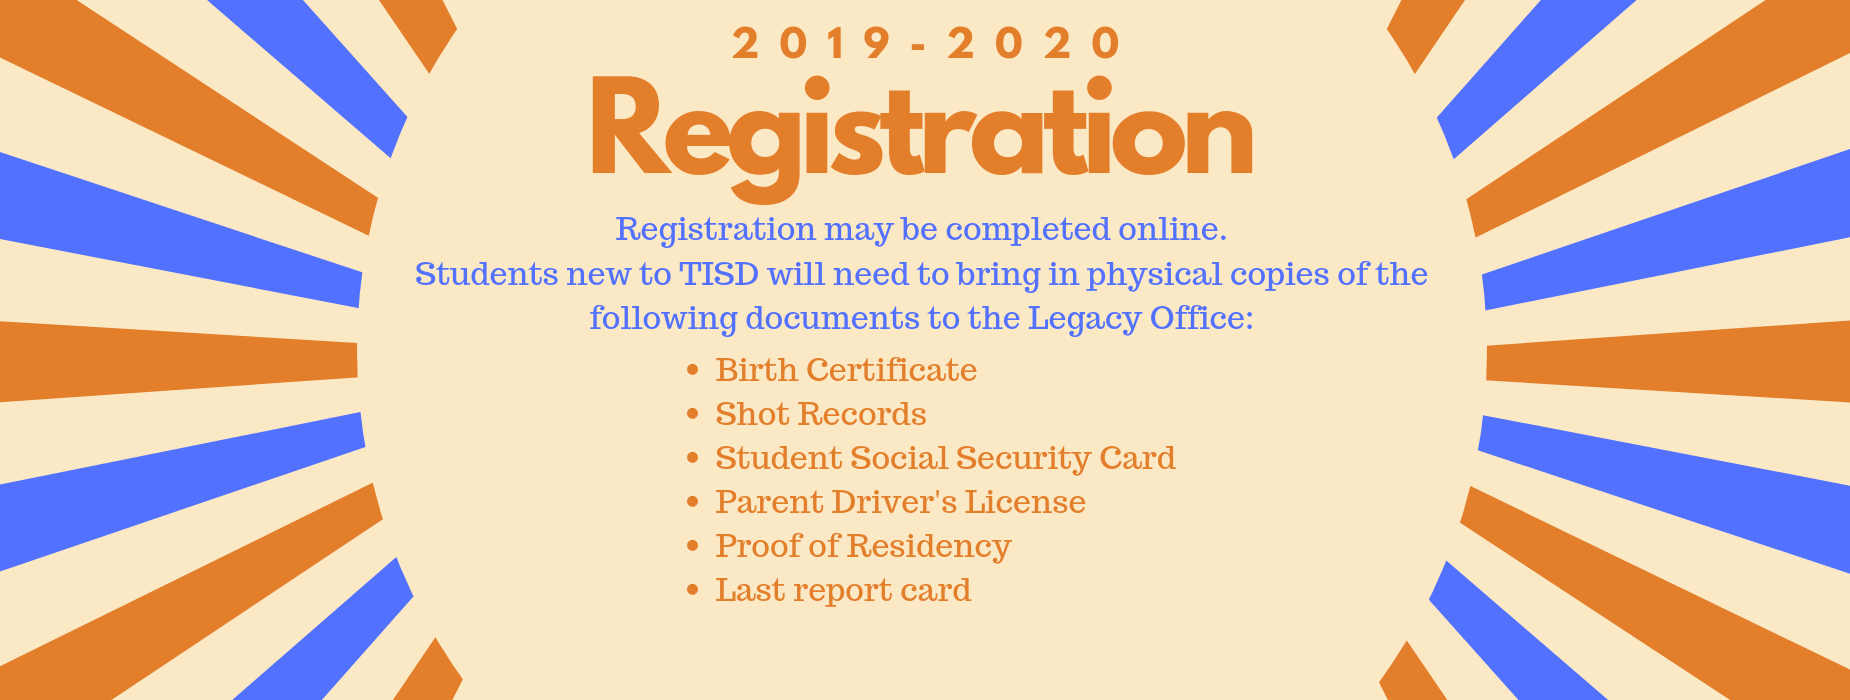 Registration may be completed online.  Students new to TISD will need to bring in physical copies of the following documents to the Legacy Office:Birth Certificate Shot Records Student Social Security Card Parent Driver's License Proof of Residency Last report card